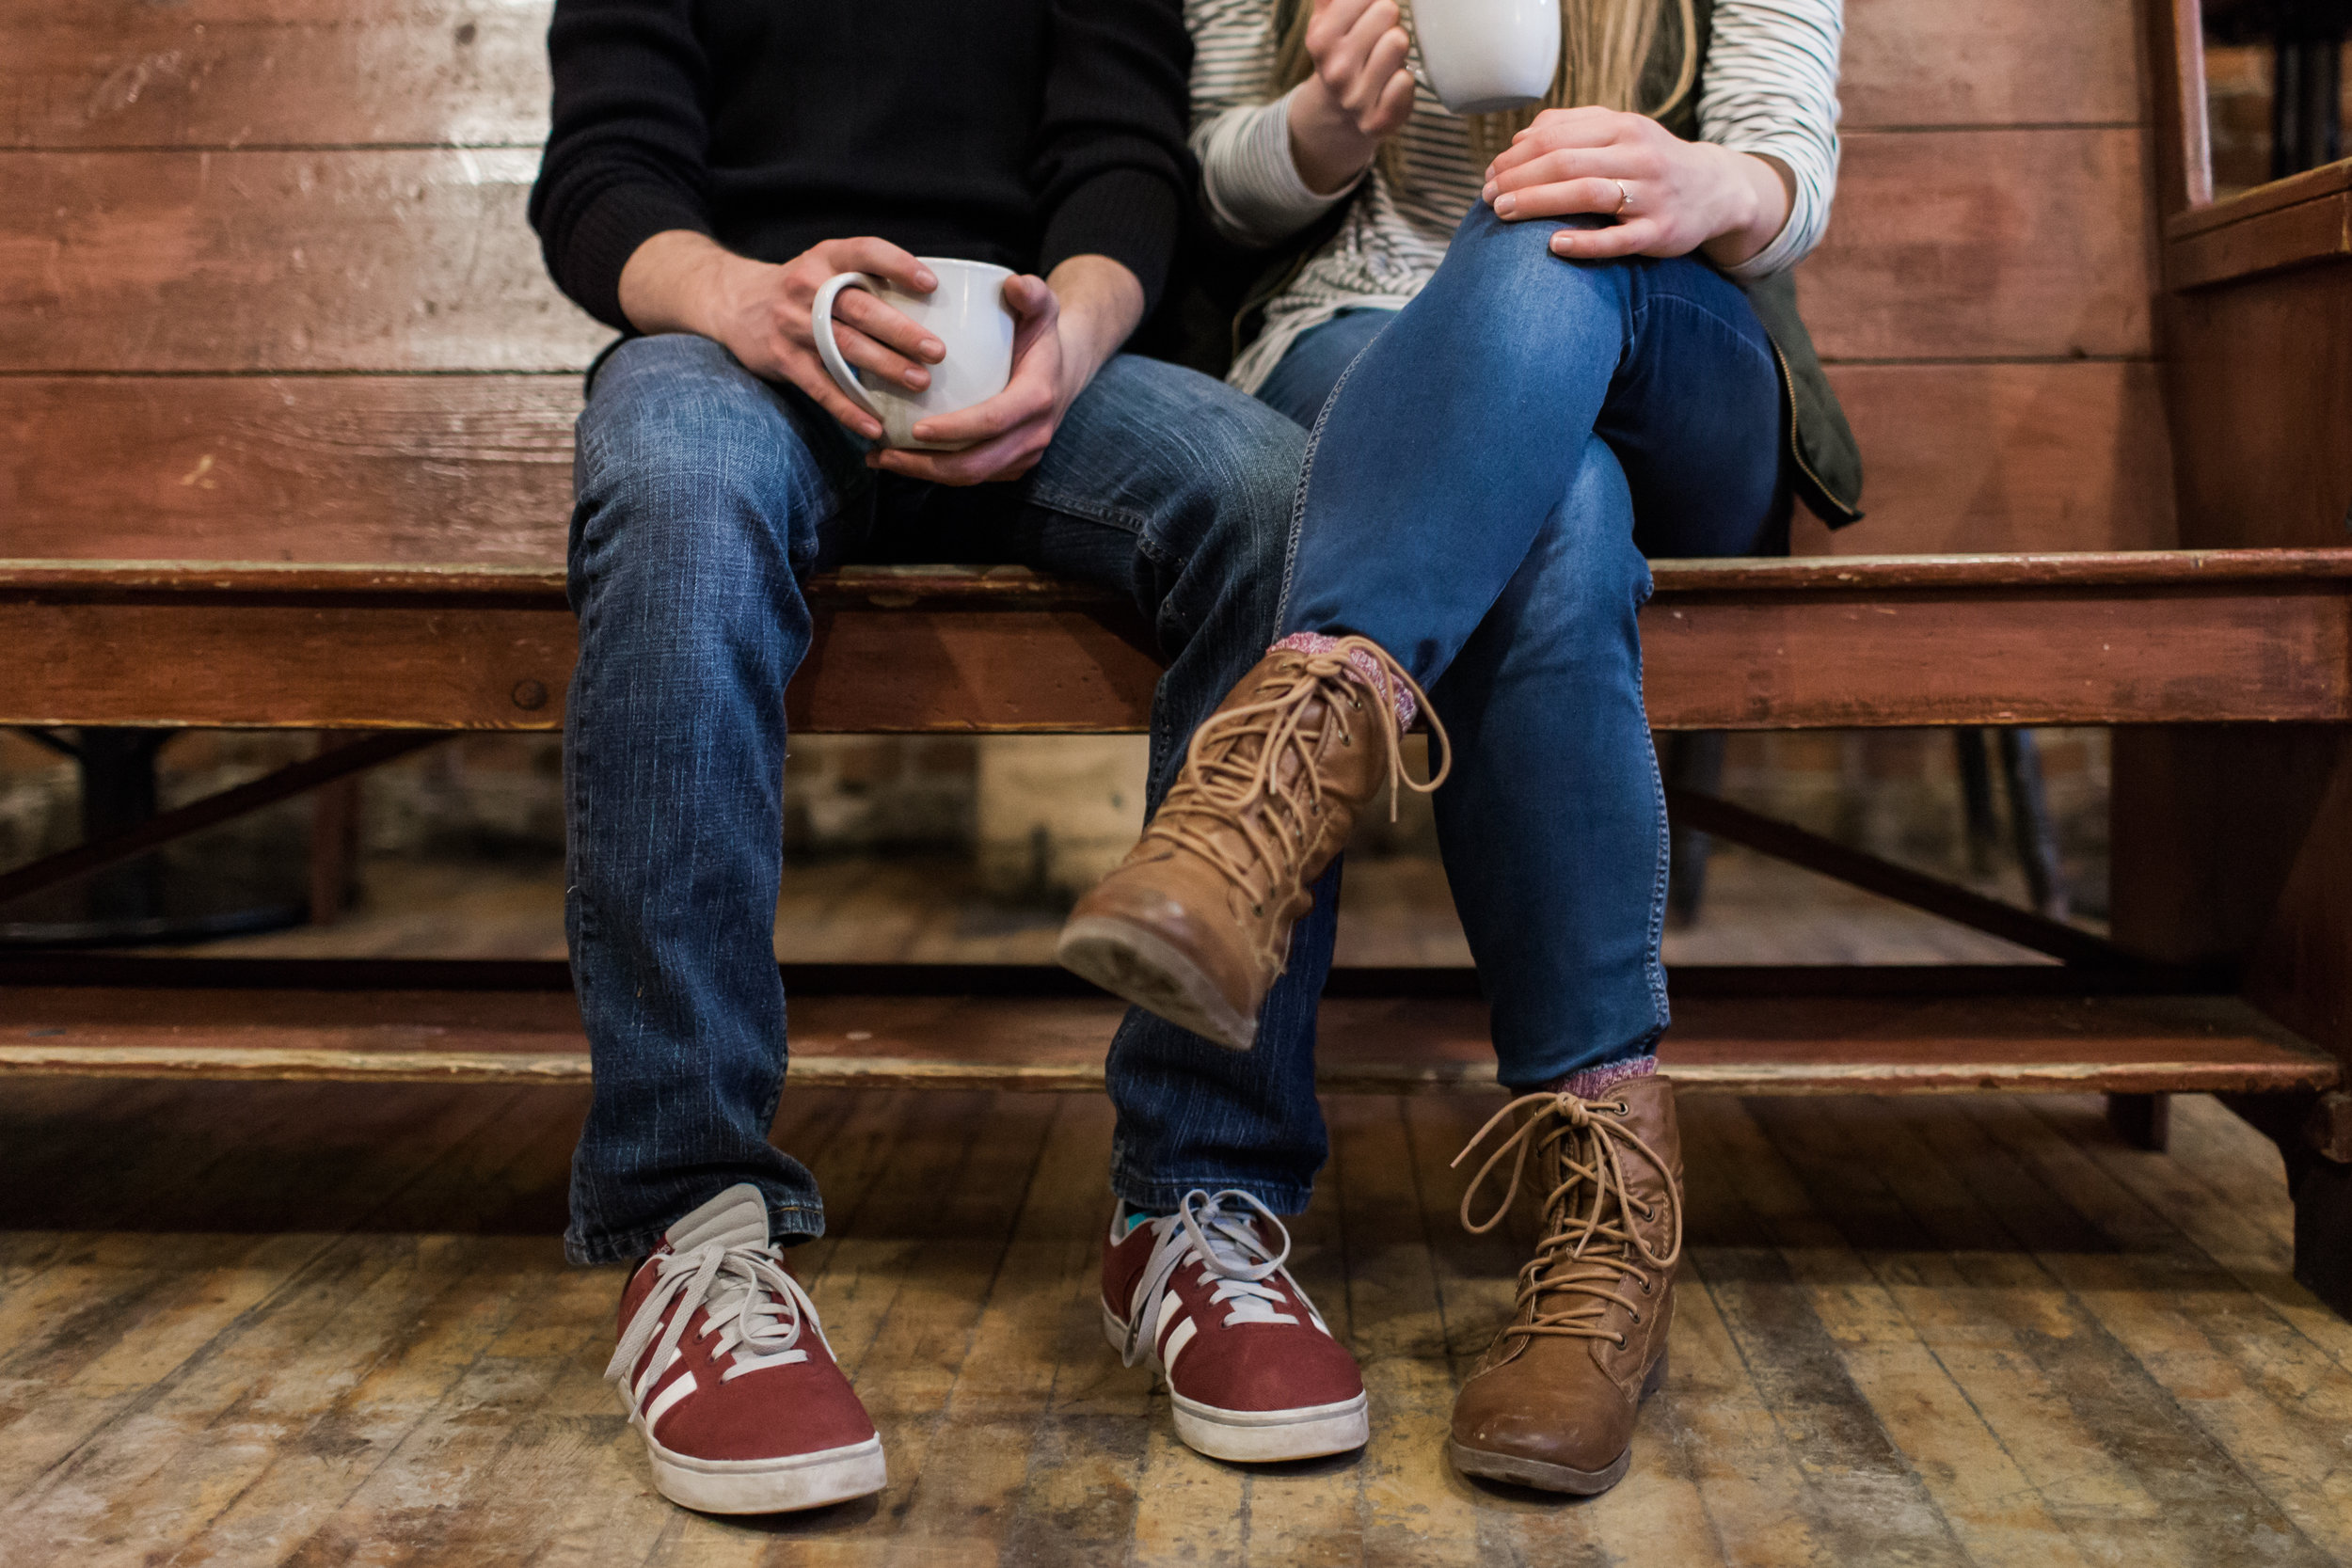 Des-Moines-coffee-shop-engagement-session-5.jpg